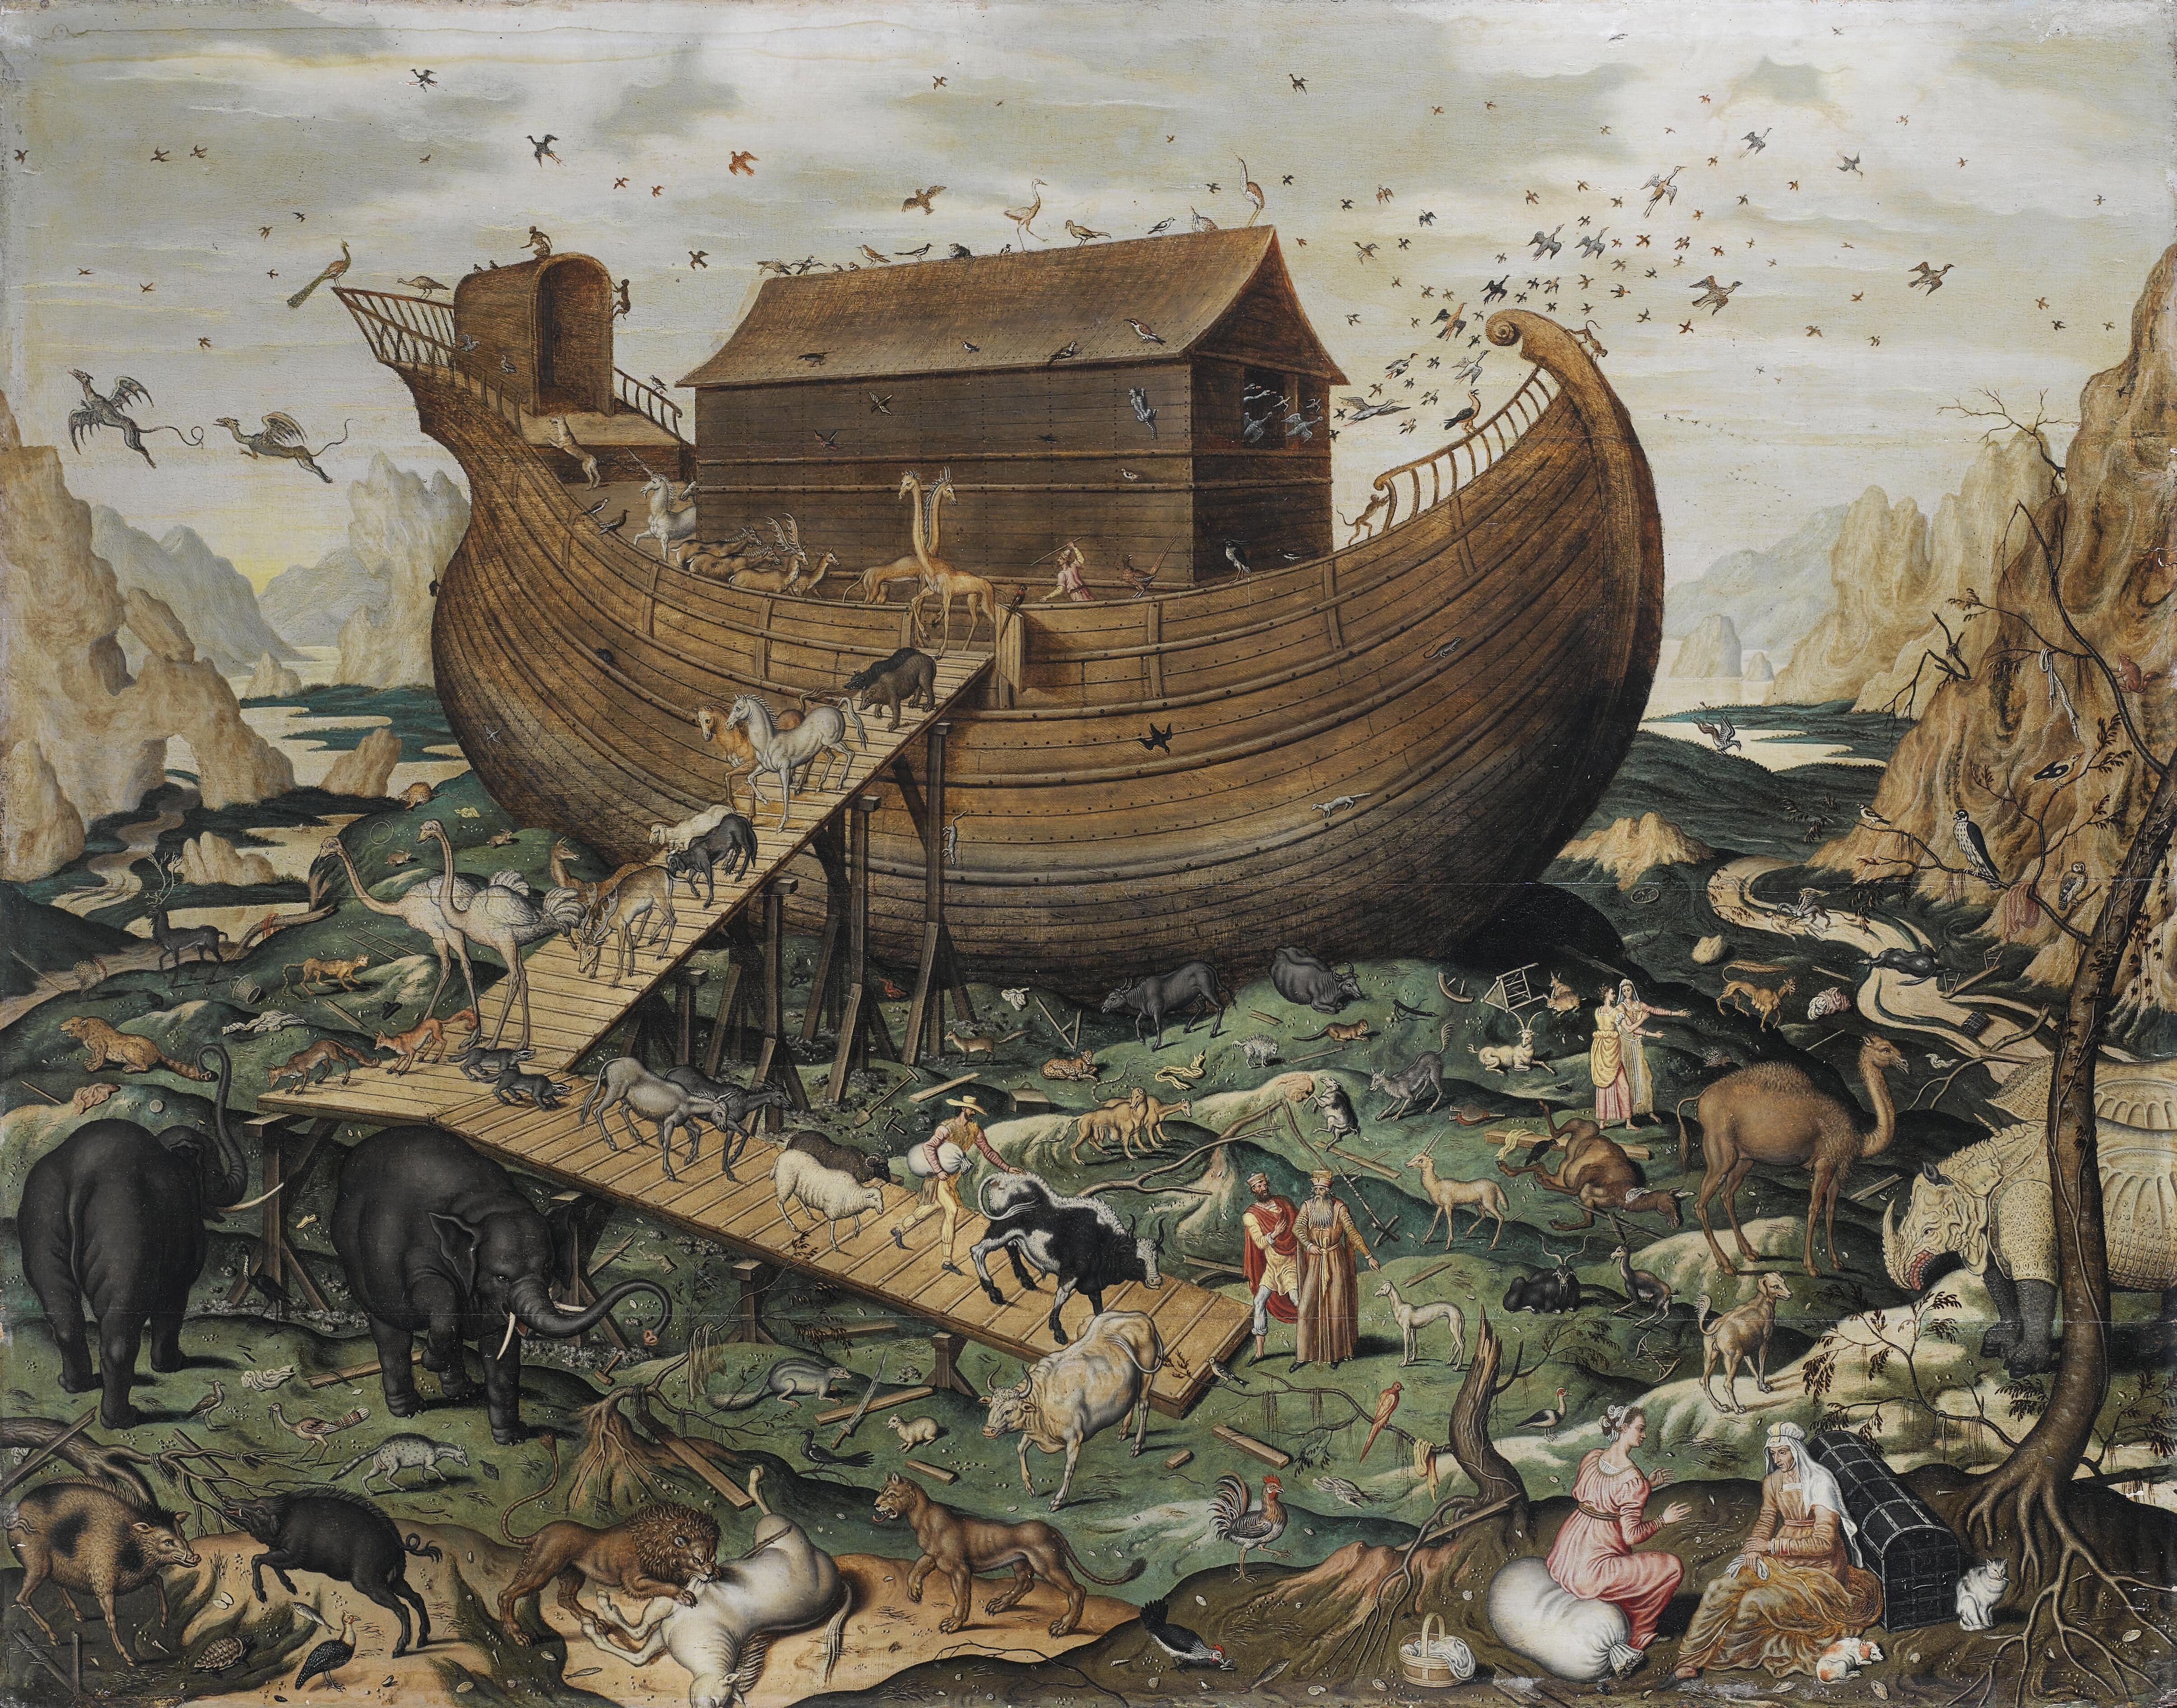 The Lord Told Noah To Build Him an Ark-y Ark-y